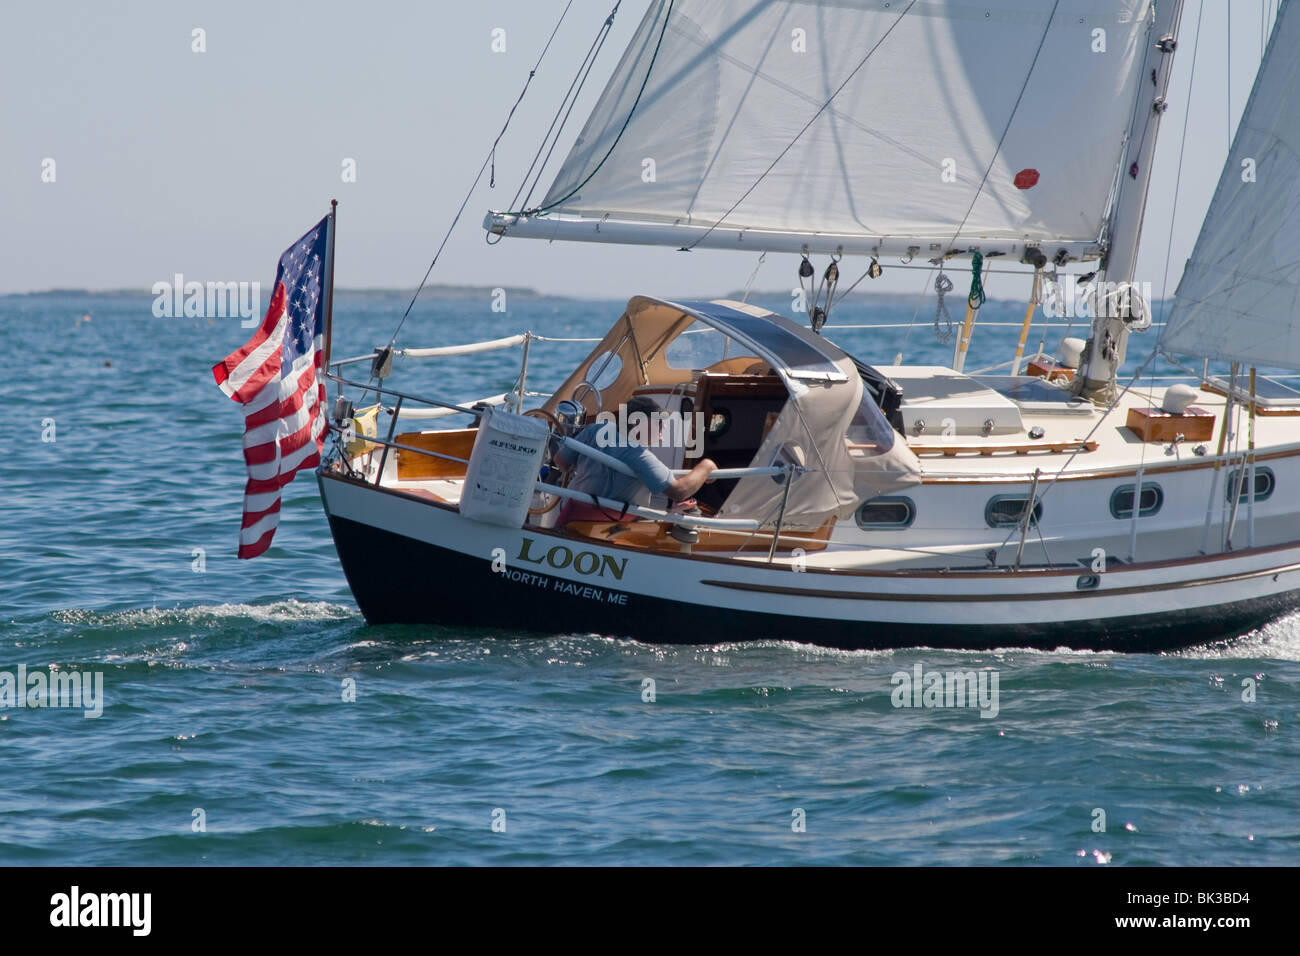 The Sloop LOON in a fresh breeze in West Penobscot Bay, Maine - Stock Image